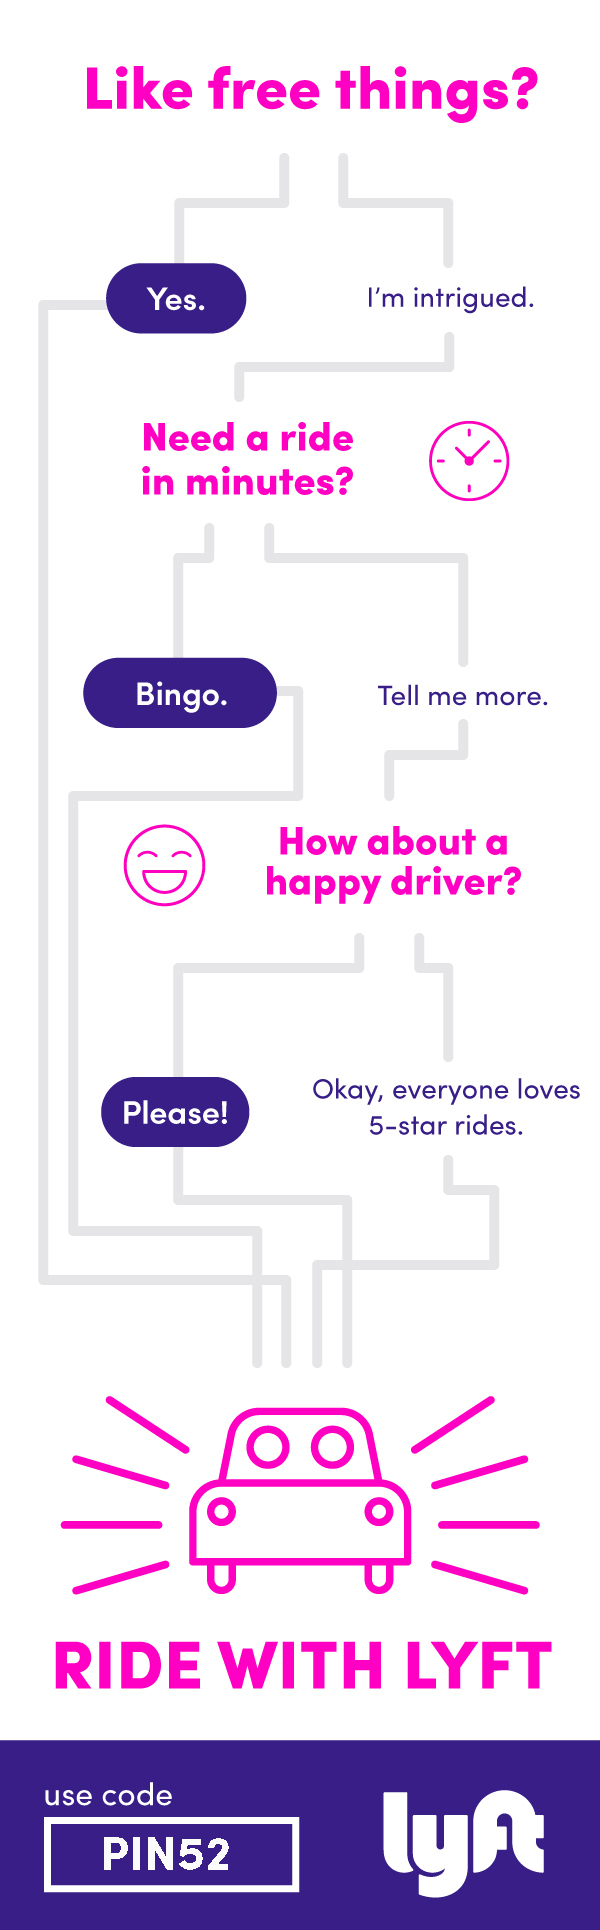 Want 50 in ride credit? Download the Lyft app, use code